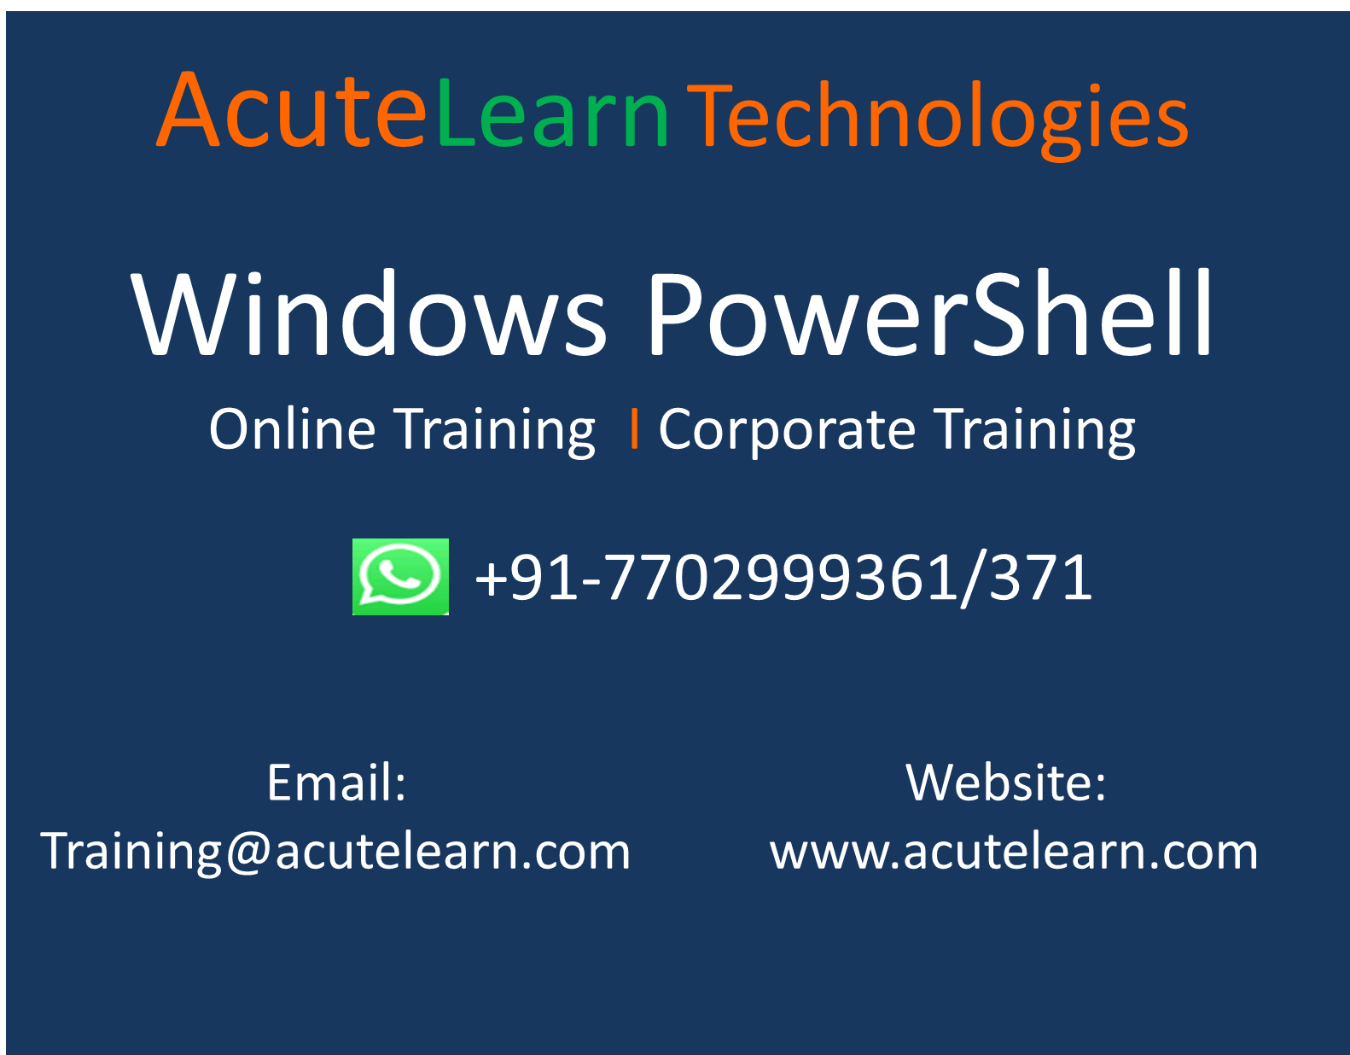 Windows PowerShell Demo session on 11-Mar-19 i e  Monday at